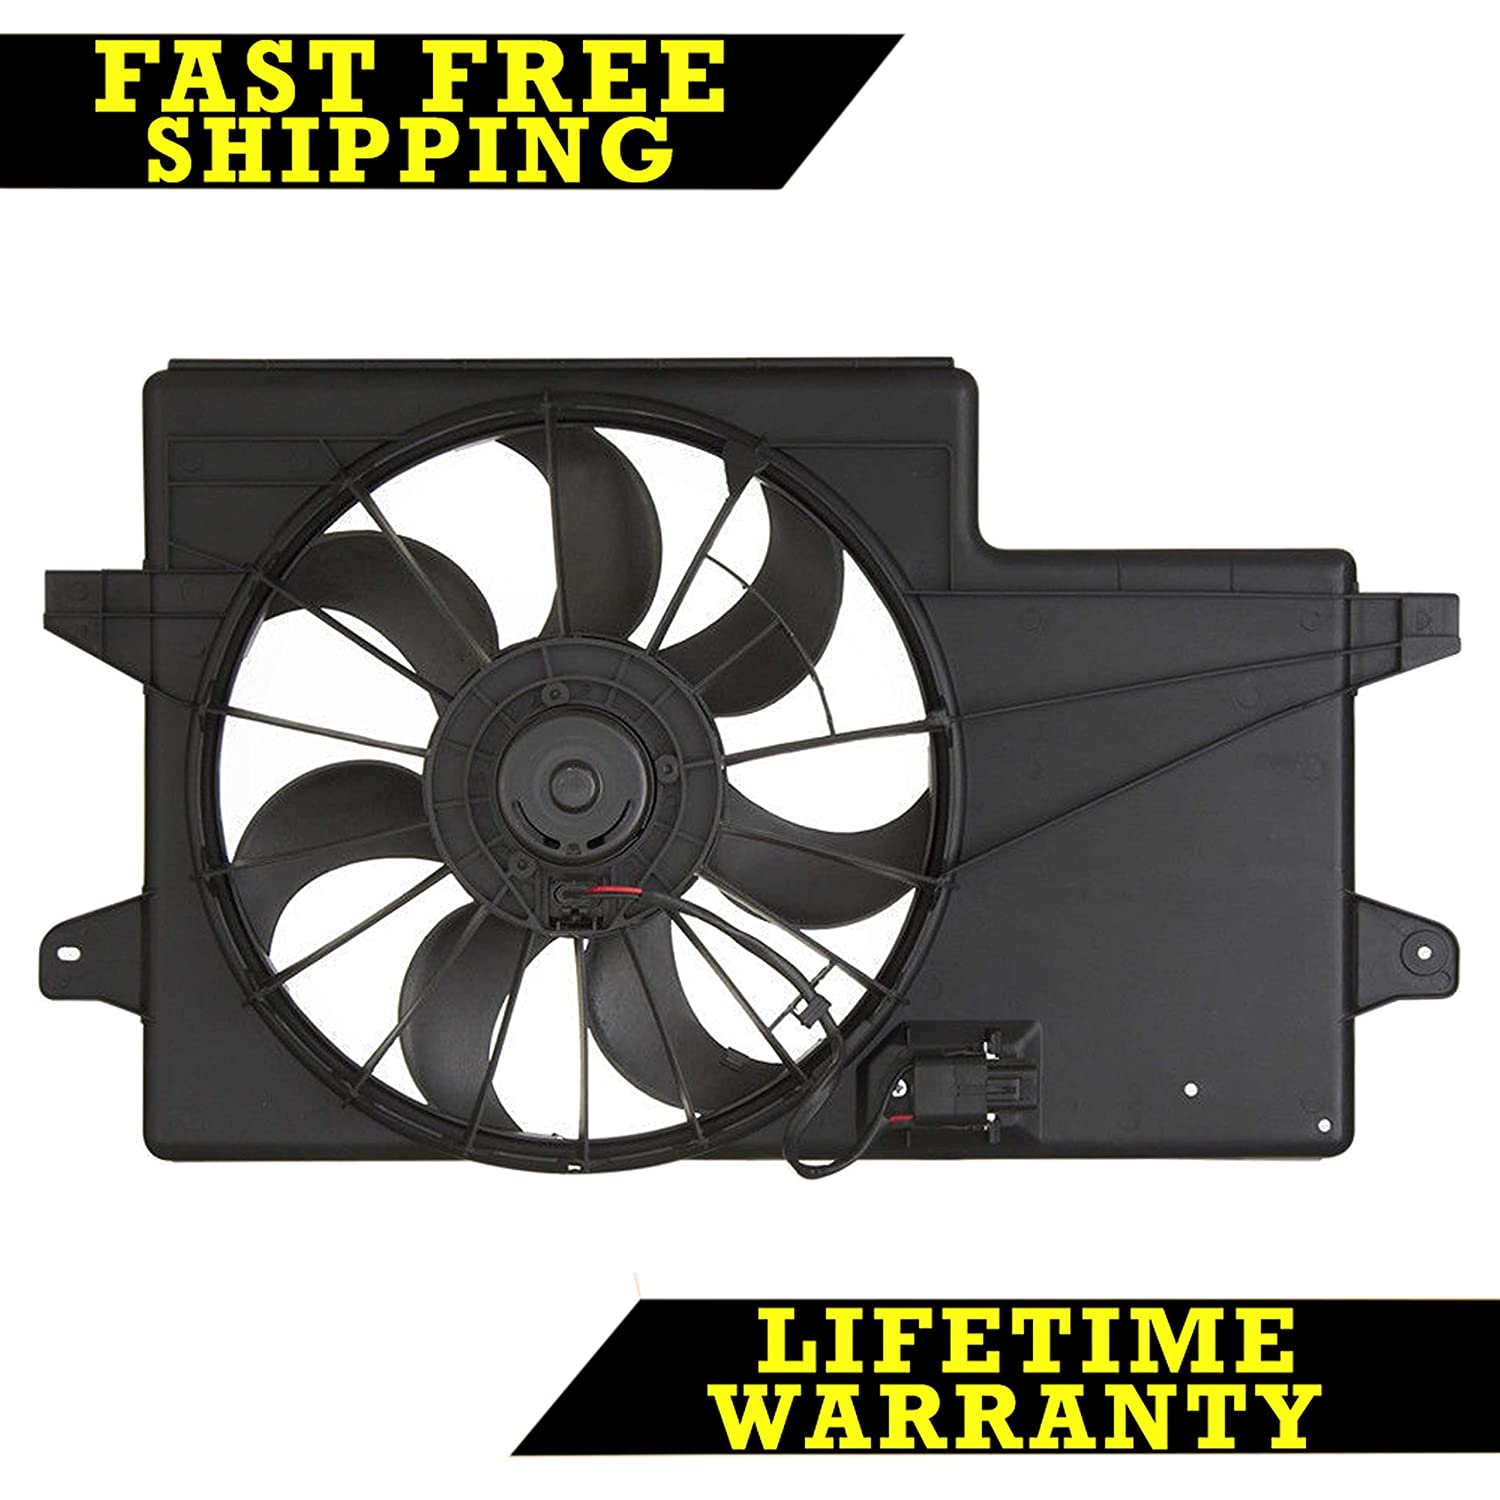 RADIATOR CONDENSER COOLING FAN FOR FORD FITS FOCUS 2.0 L4 4CYL FO3115171 Sunbelt Radiators